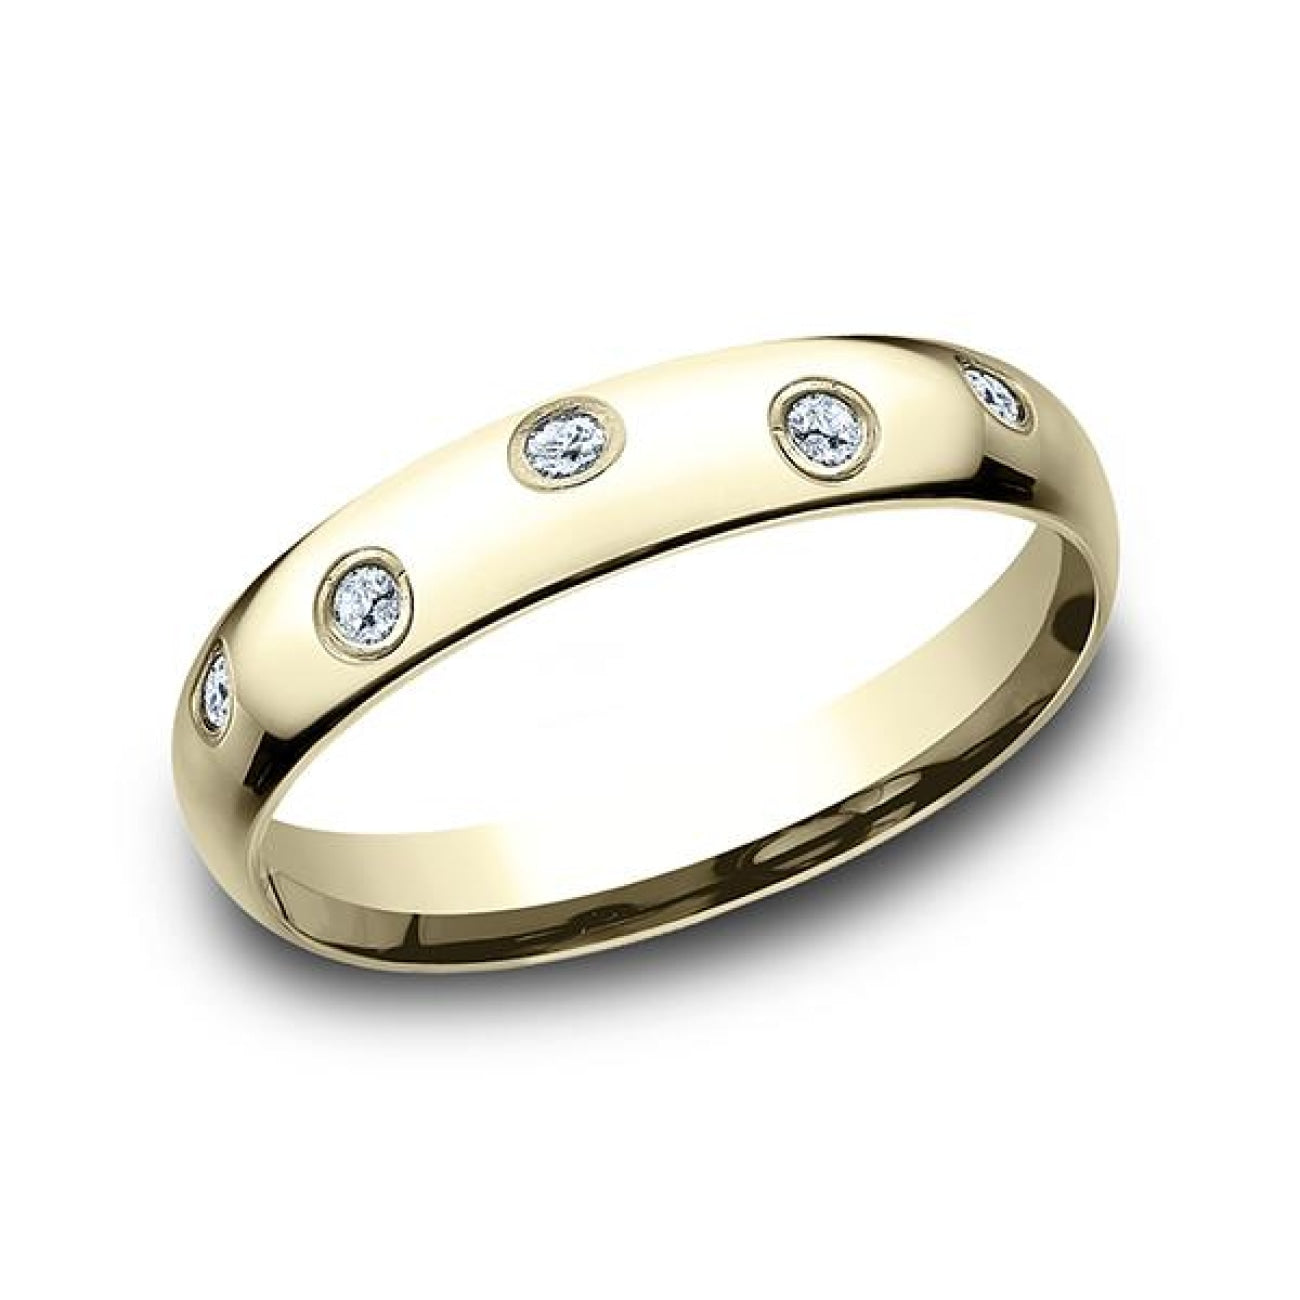 Benchmark Engagement - Comfort-Fit Diamond Wedding Ring | Manfredi Jewels